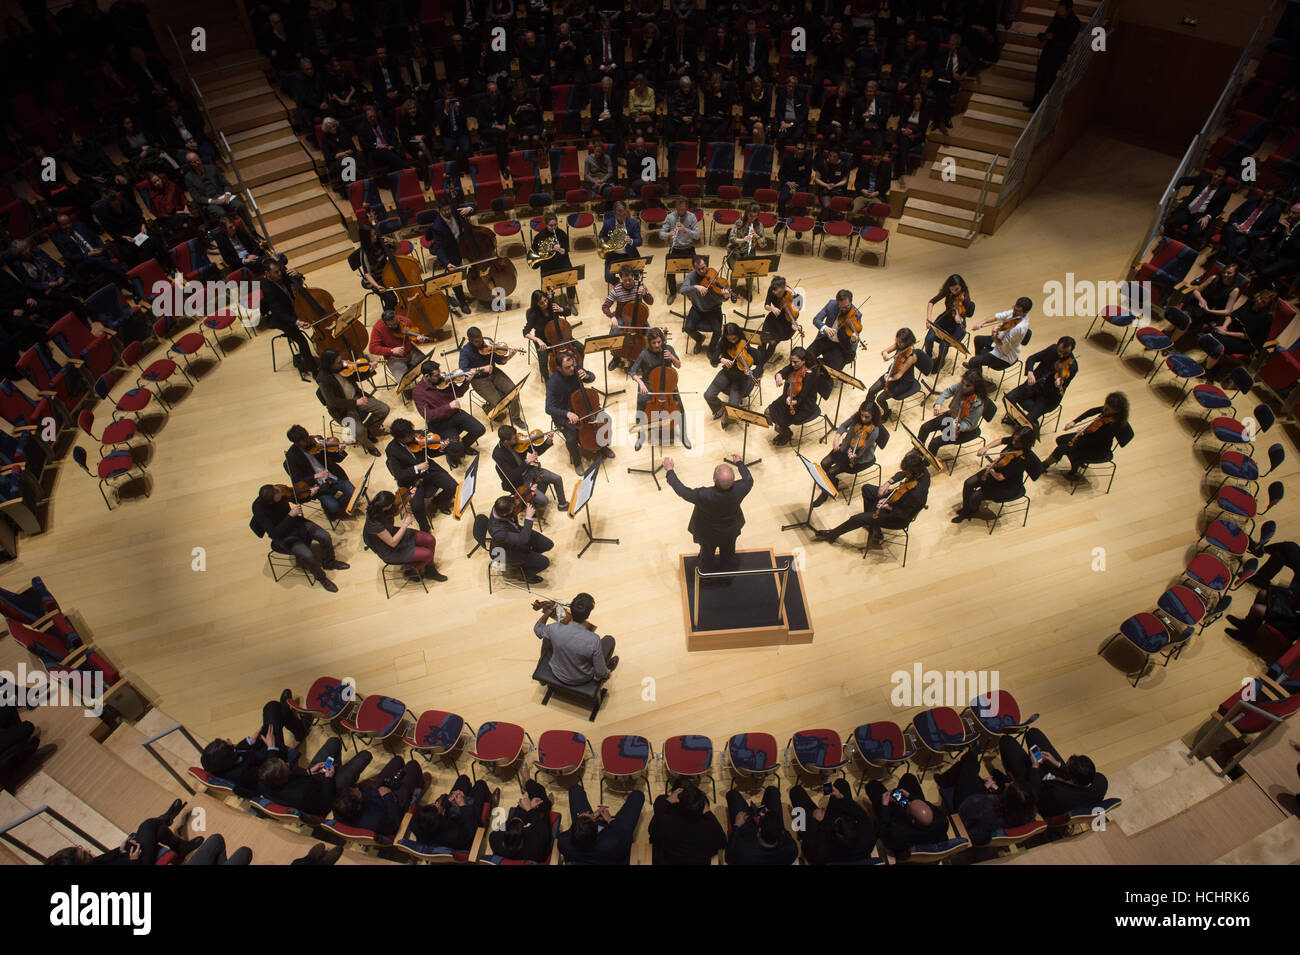 Berlin, Germany. 8th Dec, 2016. Daniel Barenboim conducts the West-Eastern Divan Orchestra in the Pierre Boulez - Stock Image